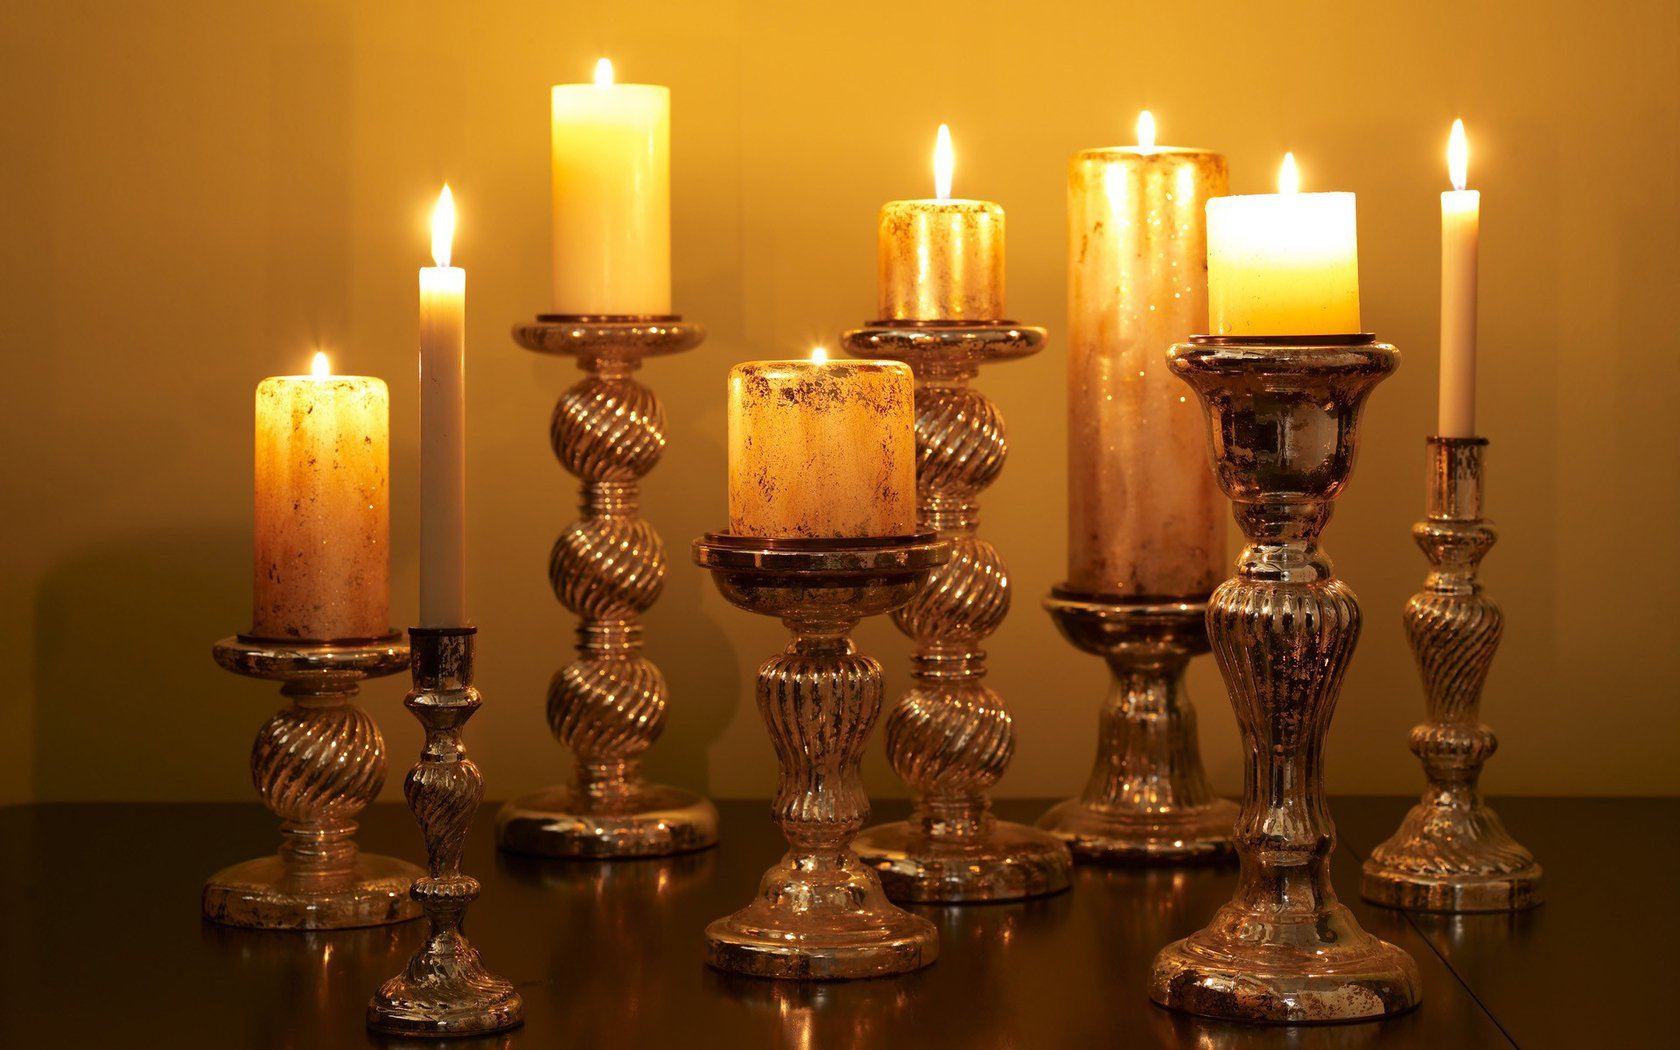 175 Candle Hd Wallpapers Background Images Wallpaper Abyss